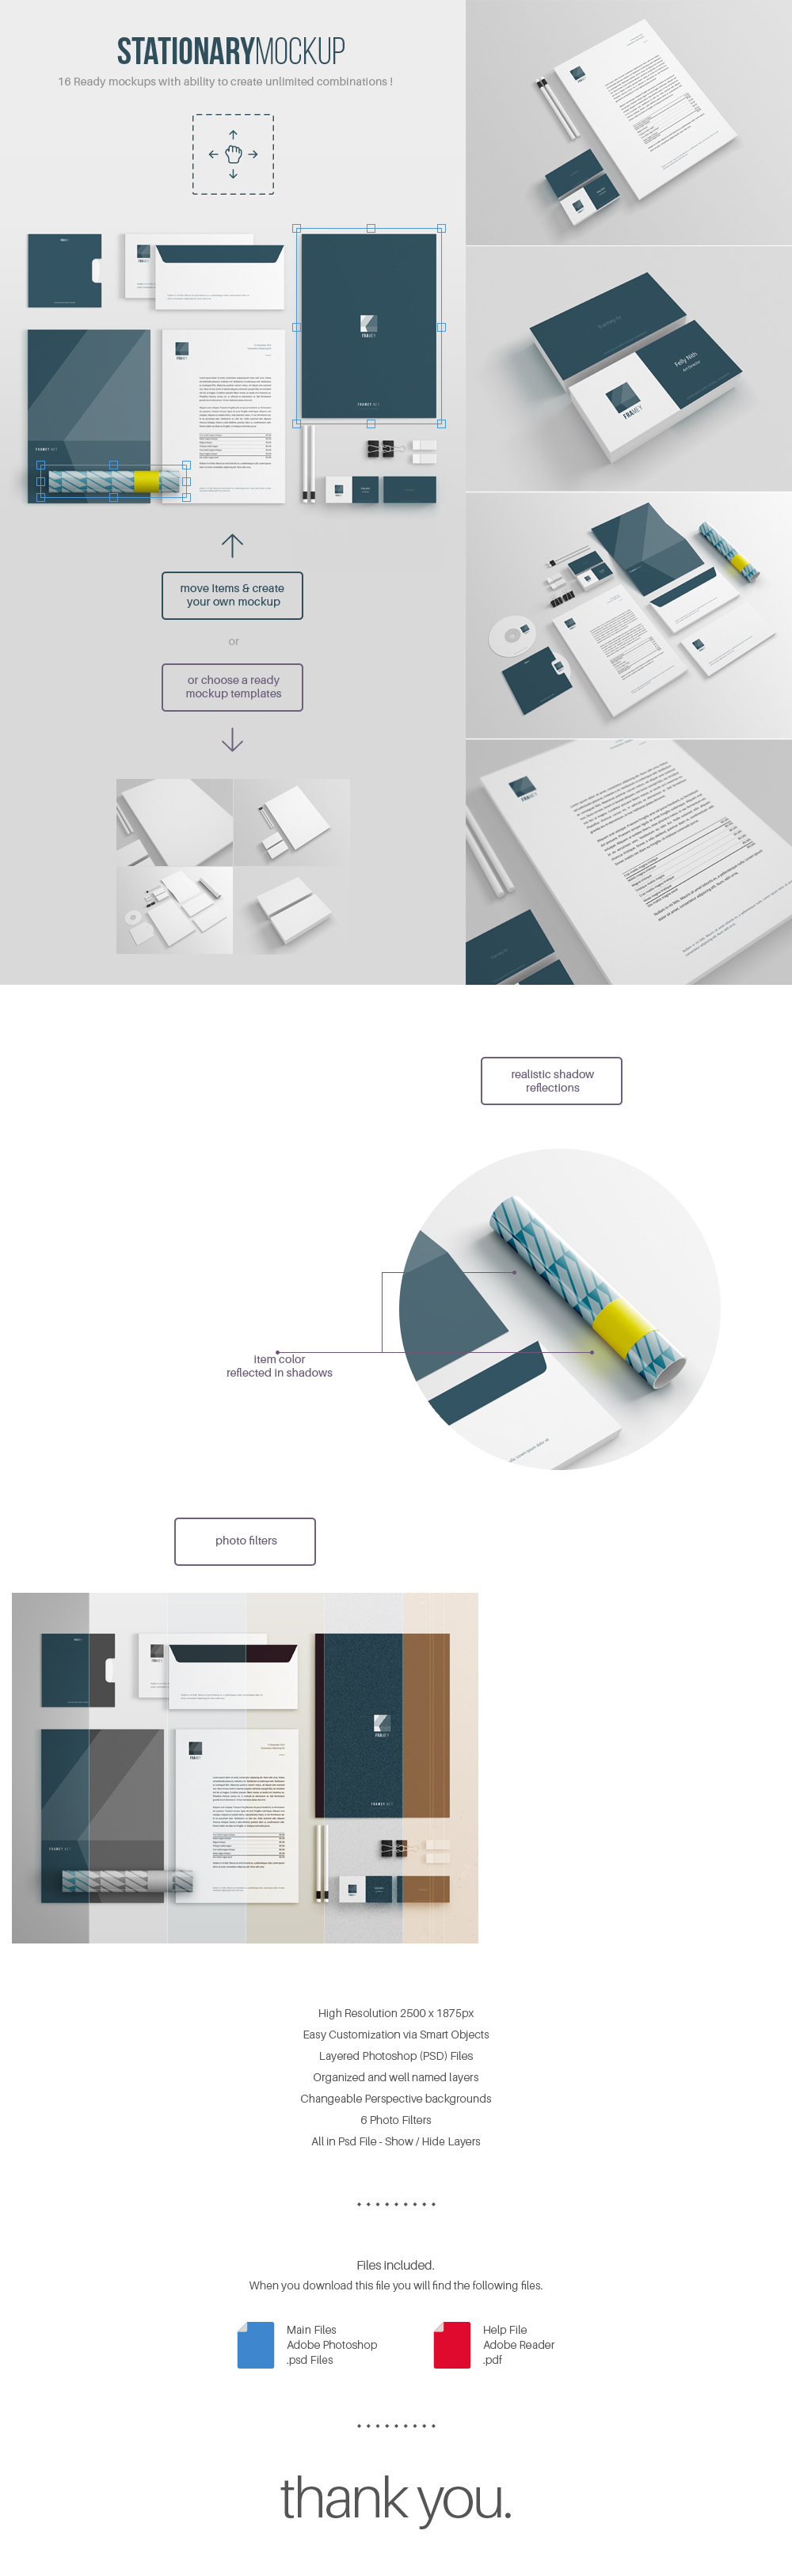 Free stationery Mockup Template